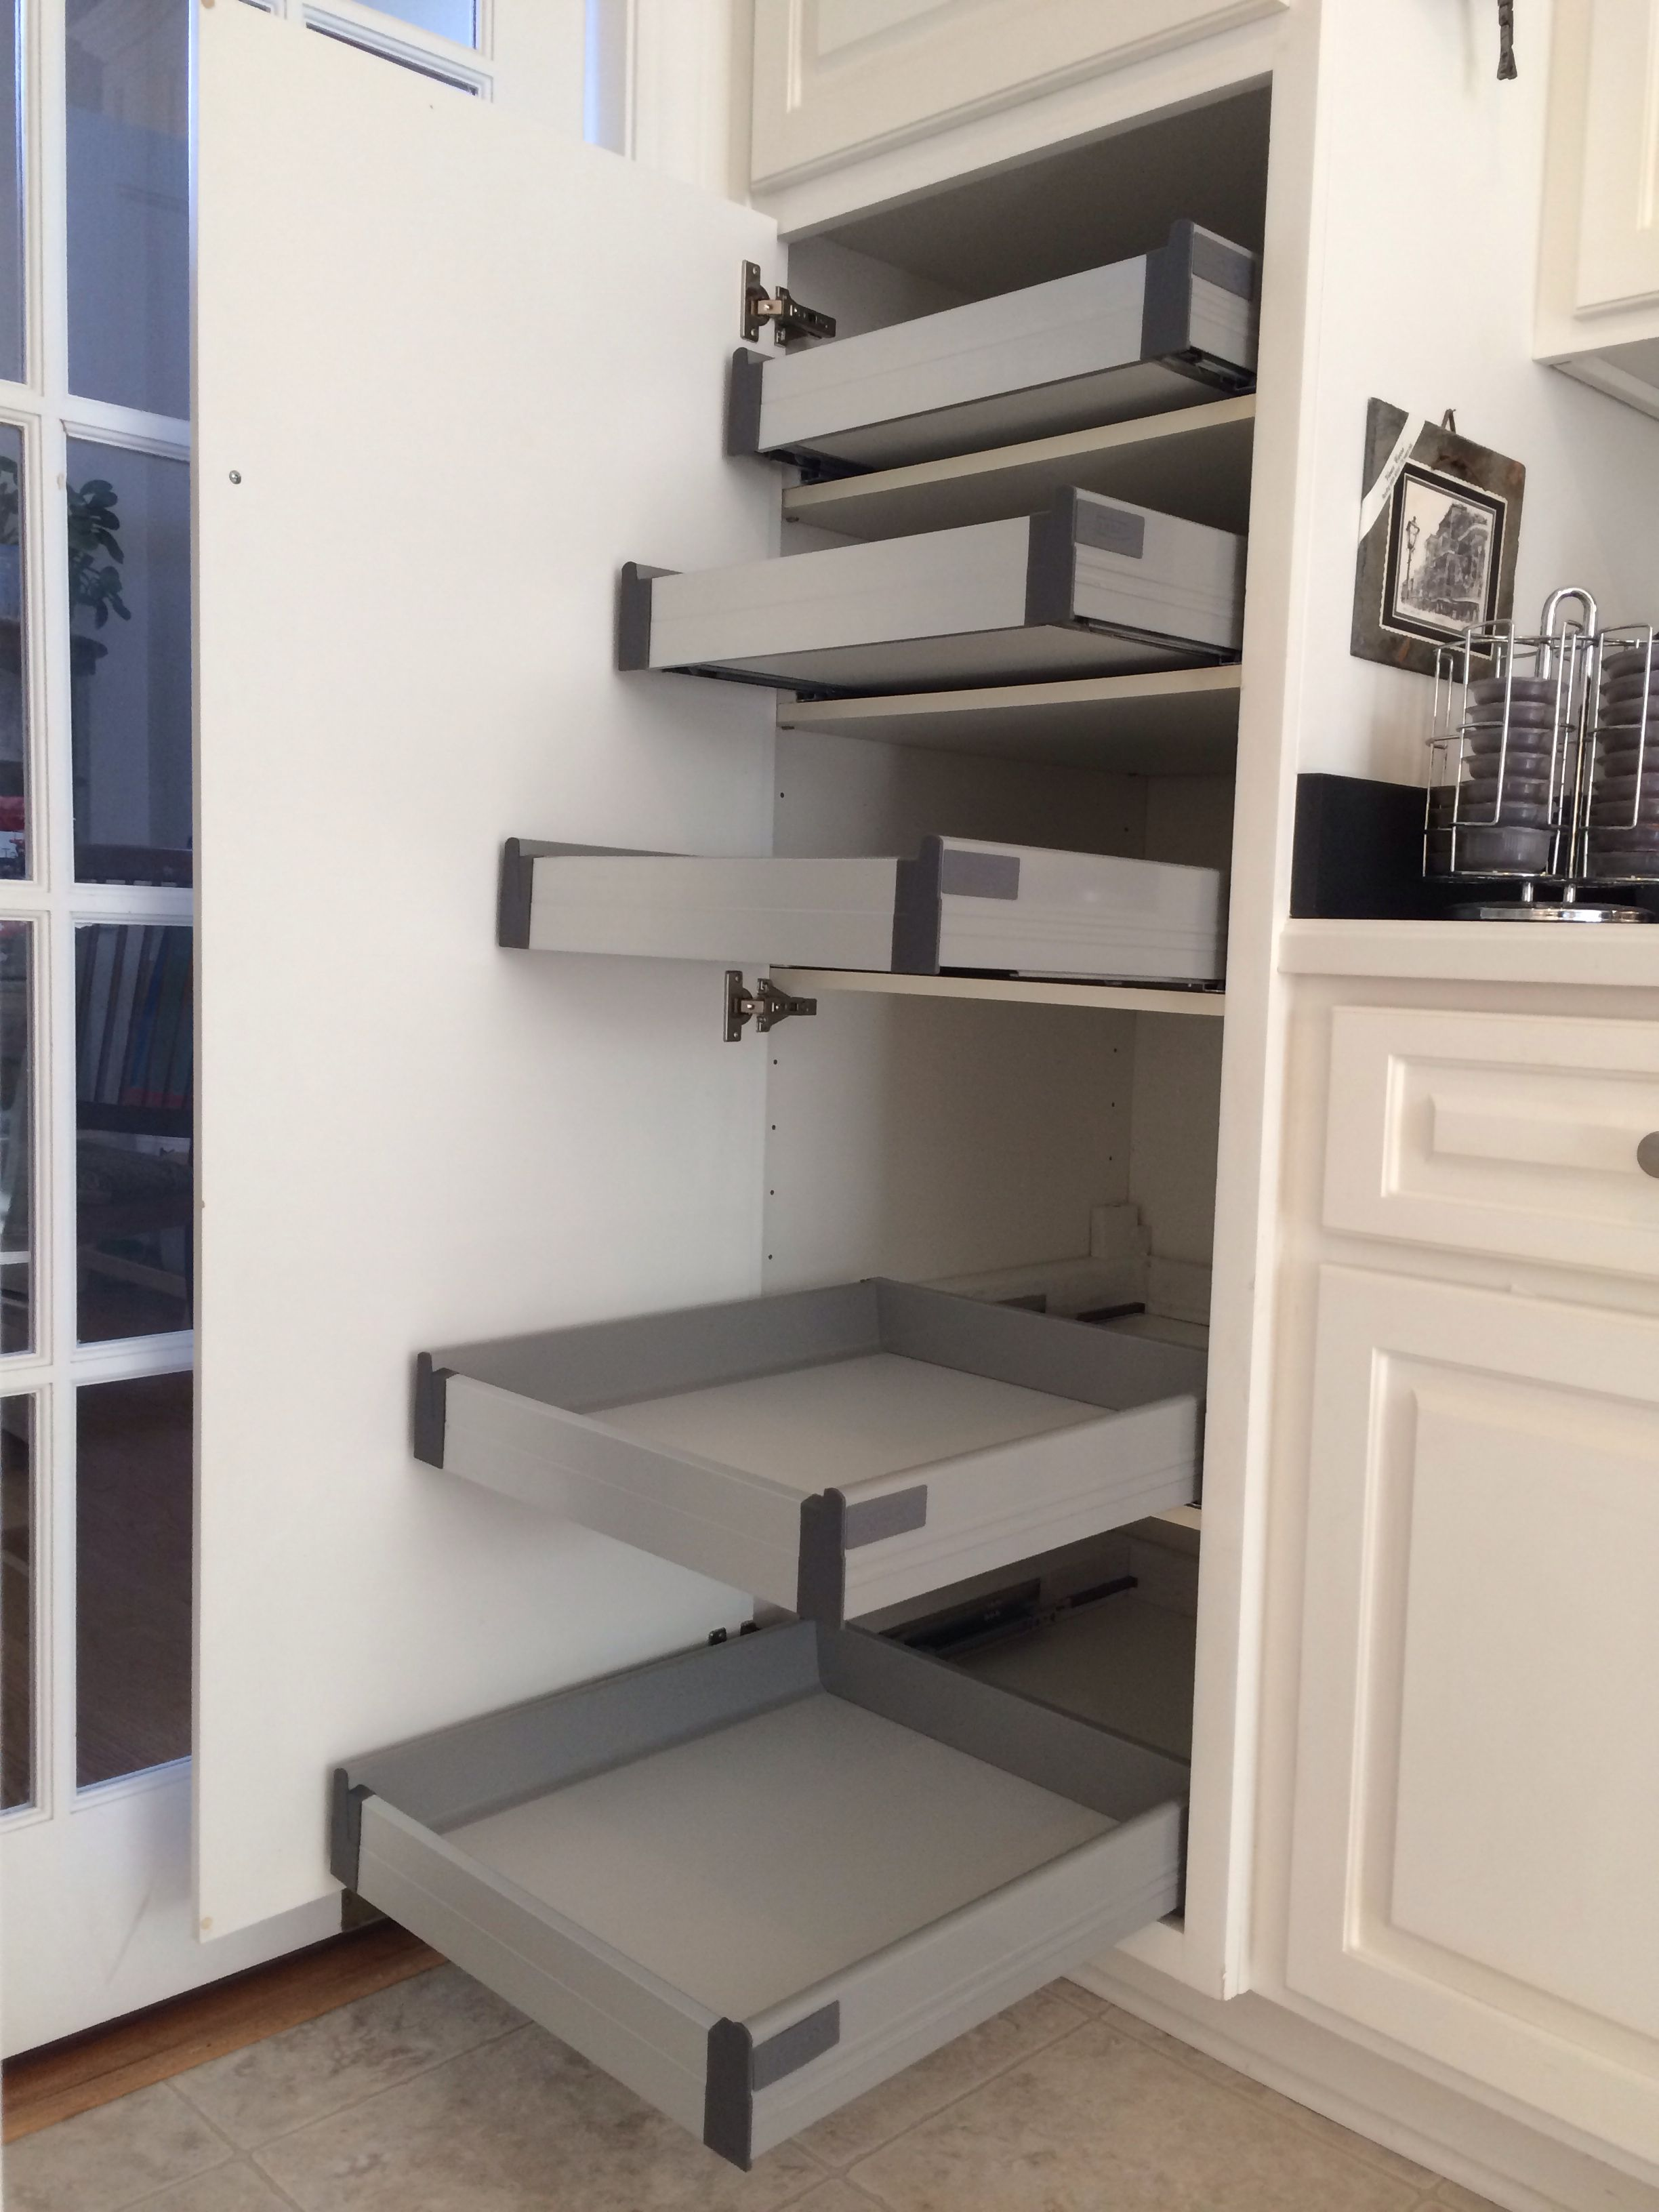 Ikea Rationell Pull Out Shelves W Dampers Retroed To Non Cabinet Pantry Using Existing